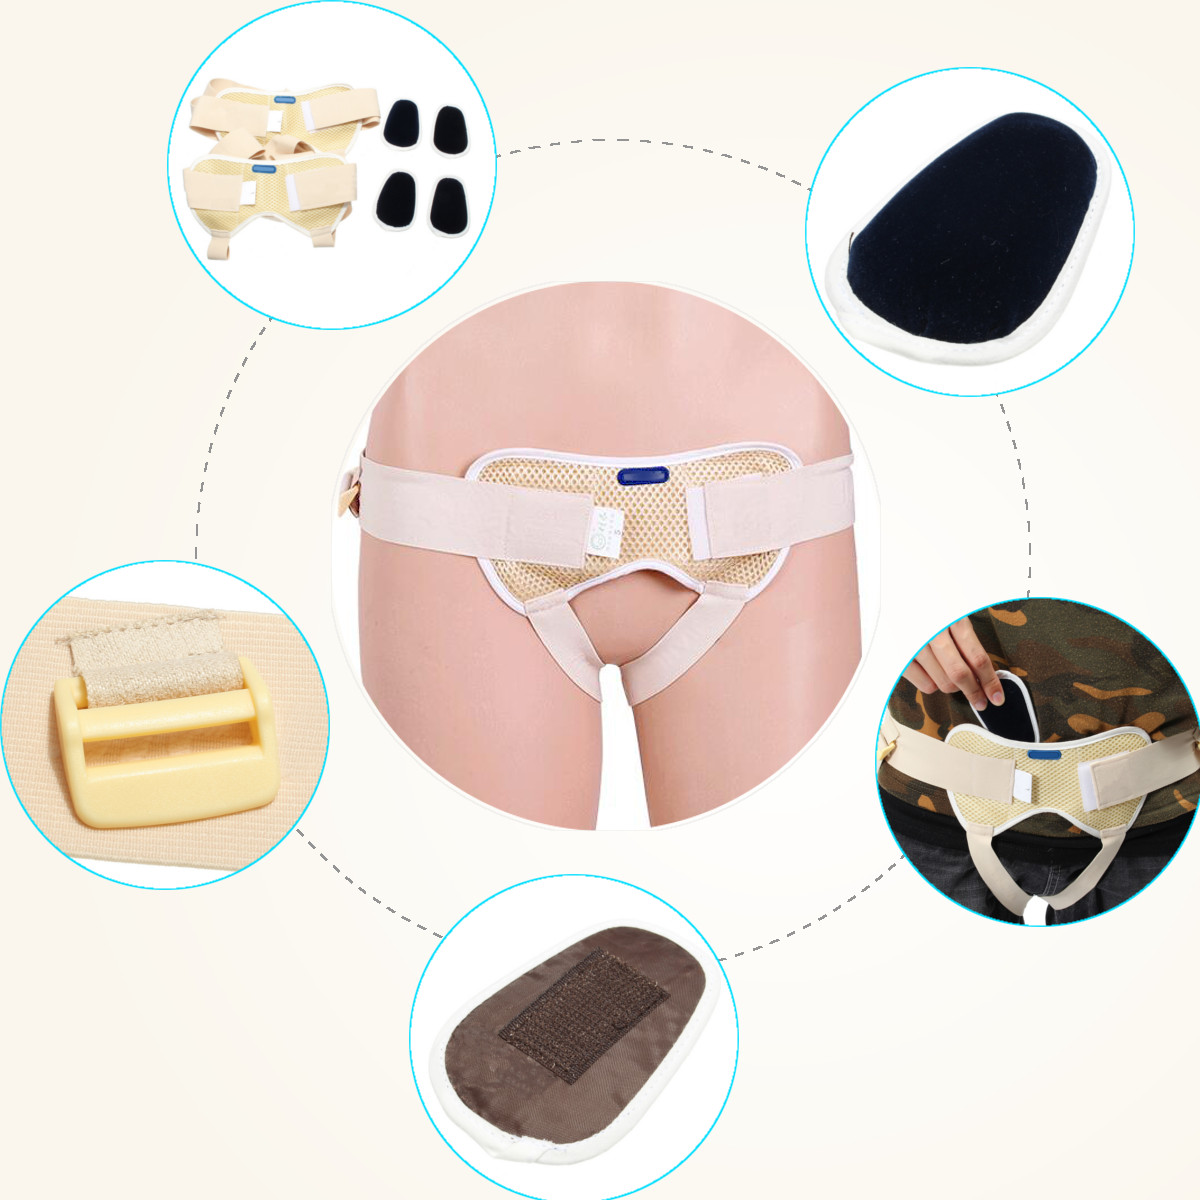 Adjustable Hernia Belt Inguinal Hernia Support Surgery Treatment With Medicine Bag Men Women Old Supports Cotton Health Care New